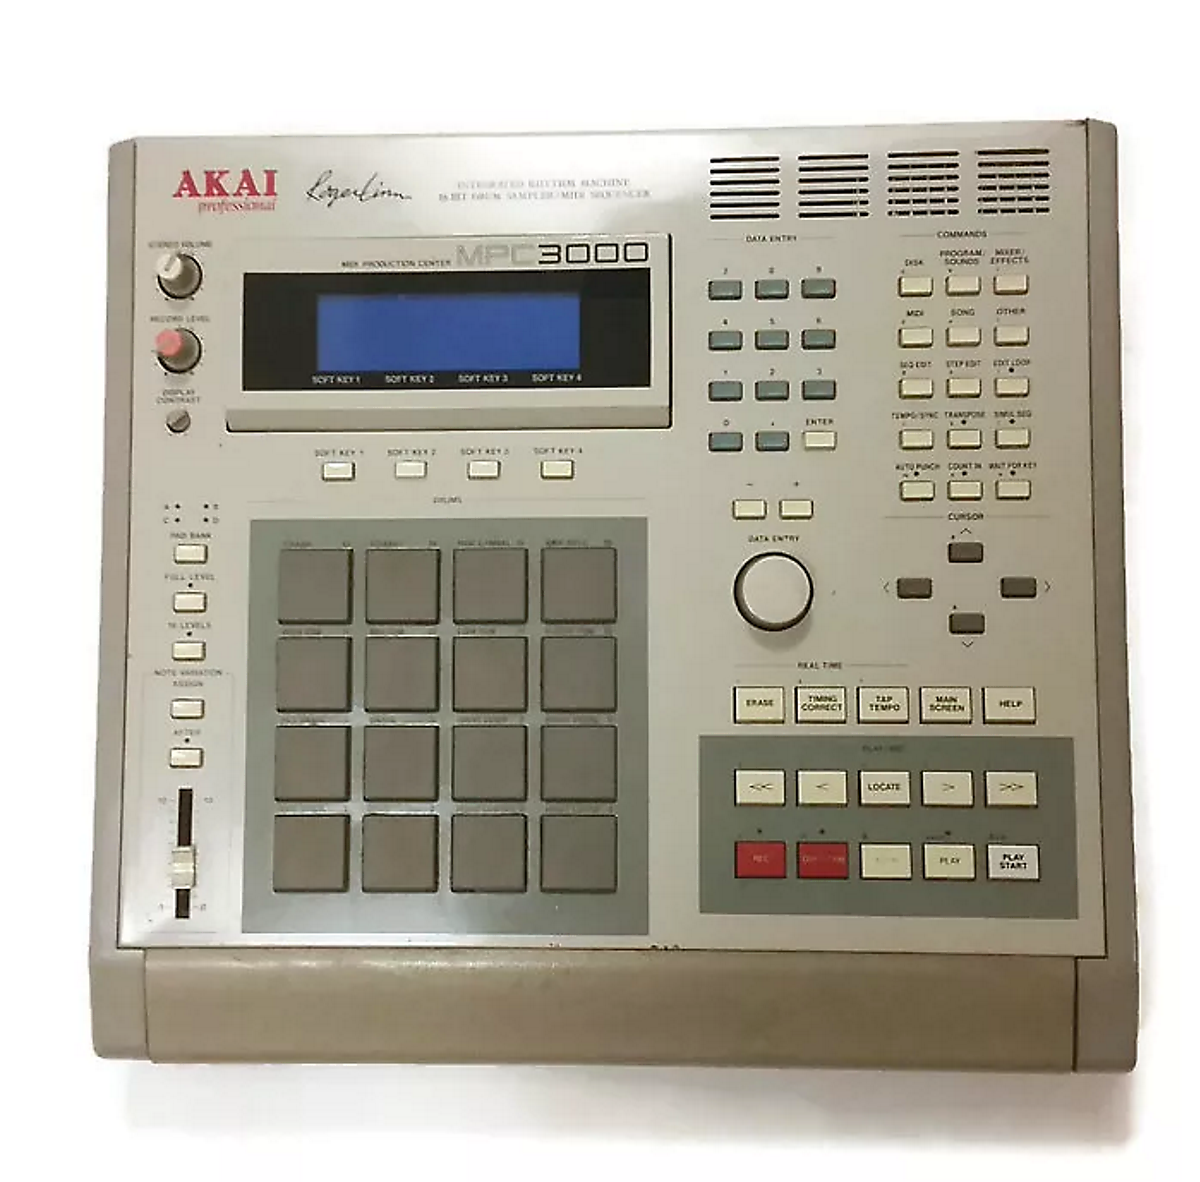 Dilla's weapon of choice, the MPC3000